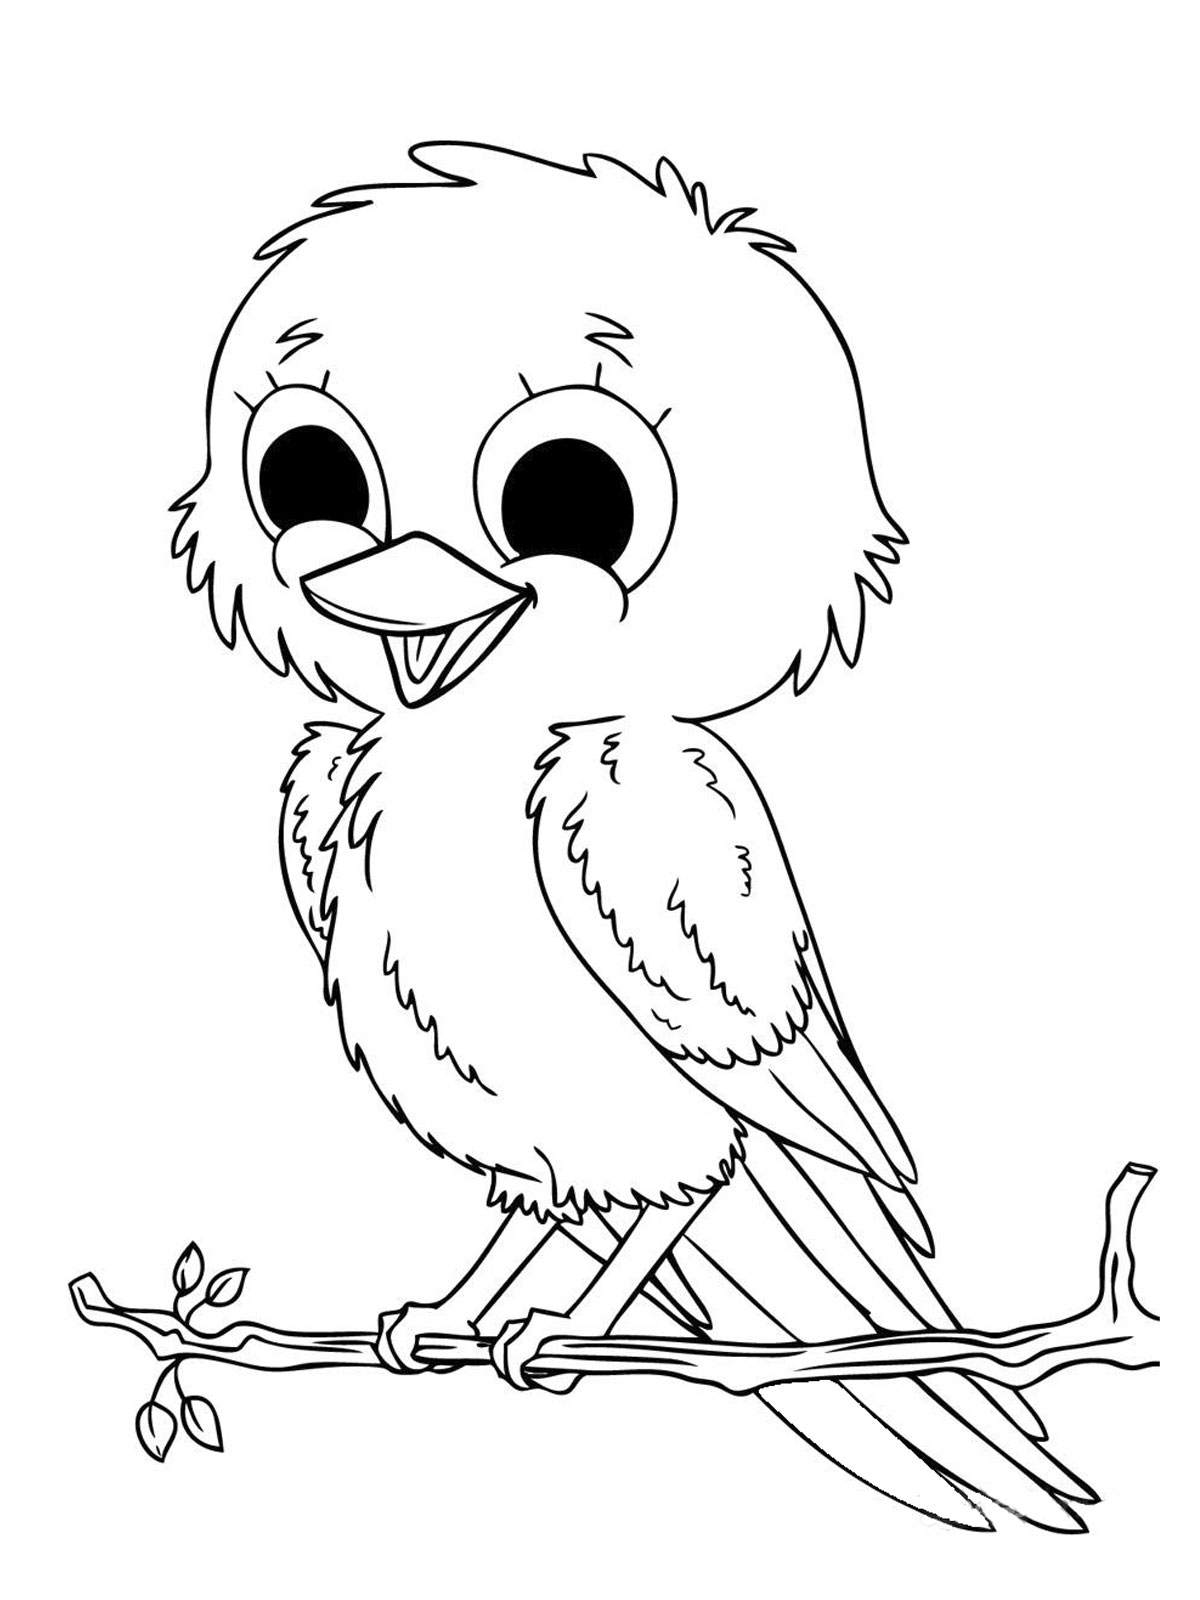 animal coloring pages free baby animal coloring pages realistic coloring pages coloring animal free pages